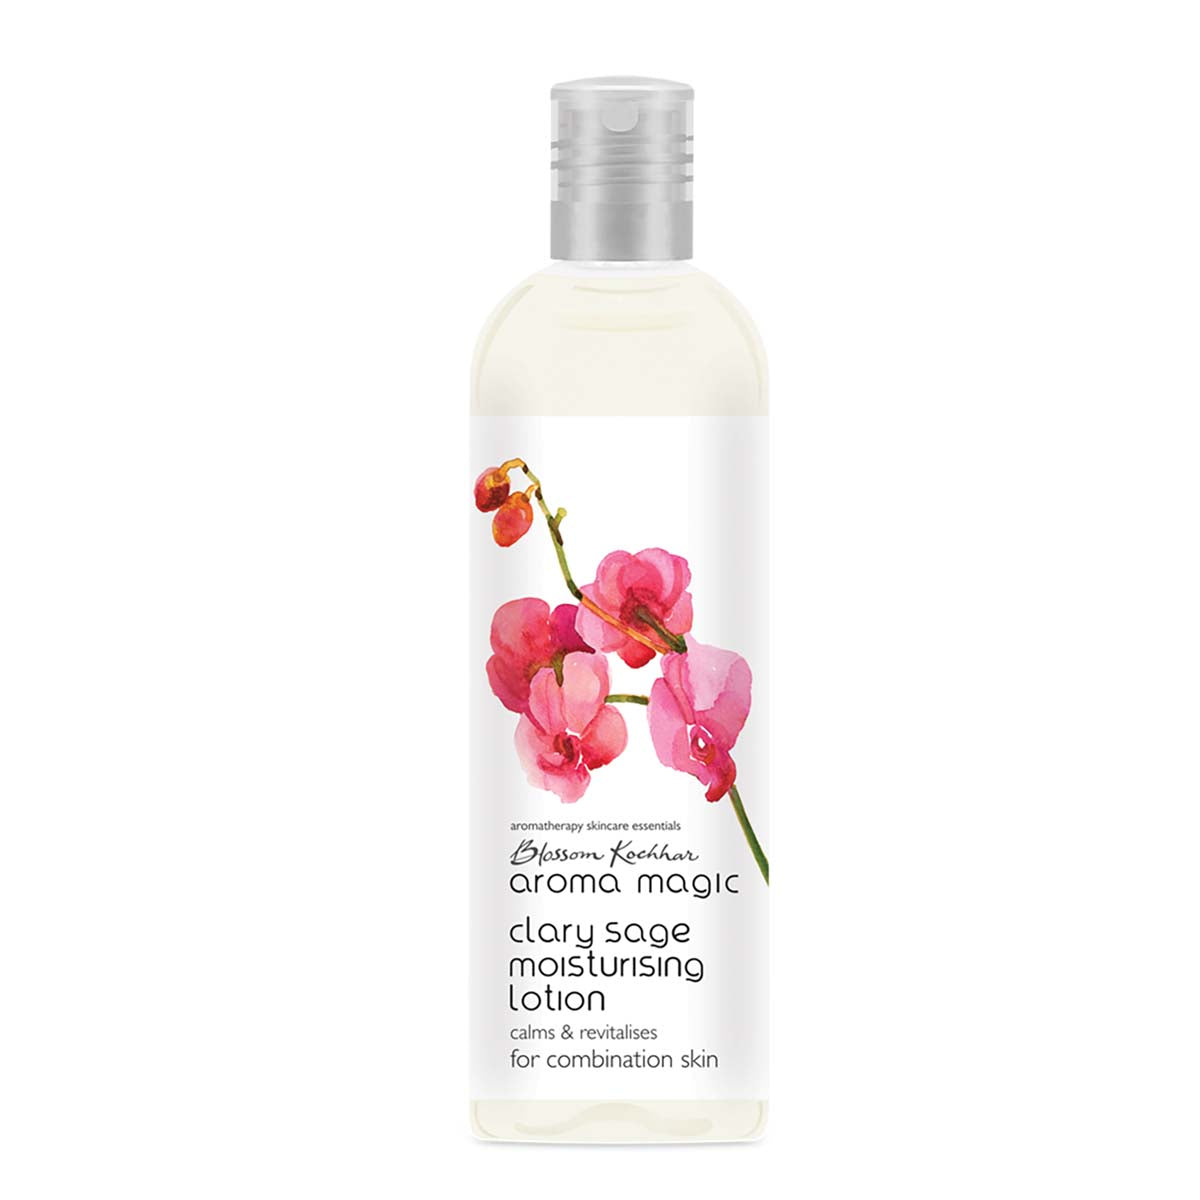 Aroma Magic Clary Sage Moisturising Lotion (for combination skin)